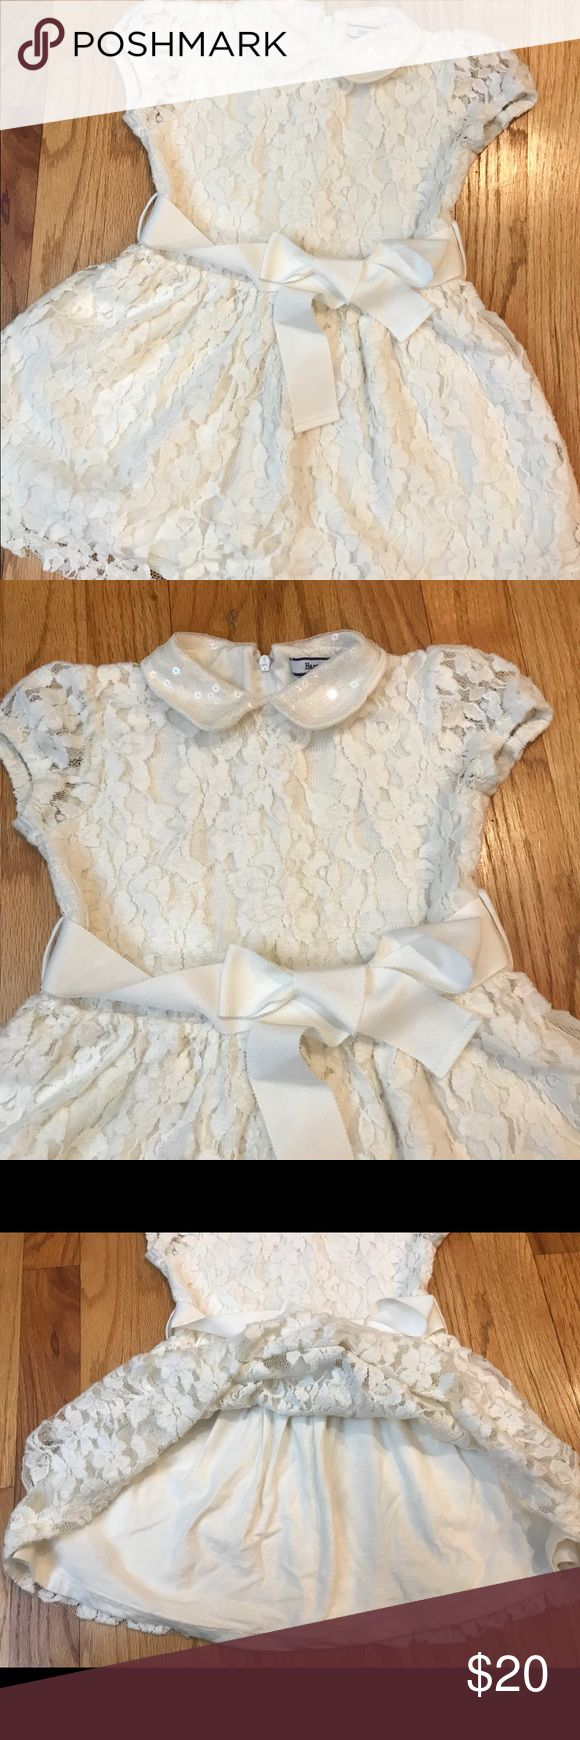 Heartstrings toddler/ little girl white dress Heartstrings toddler/ little girl white dress size in 3T with adjustable straps. Only worn this twice. No stains or marks. Comes from a smoke free home as well. Hartstrings Dresses Formal